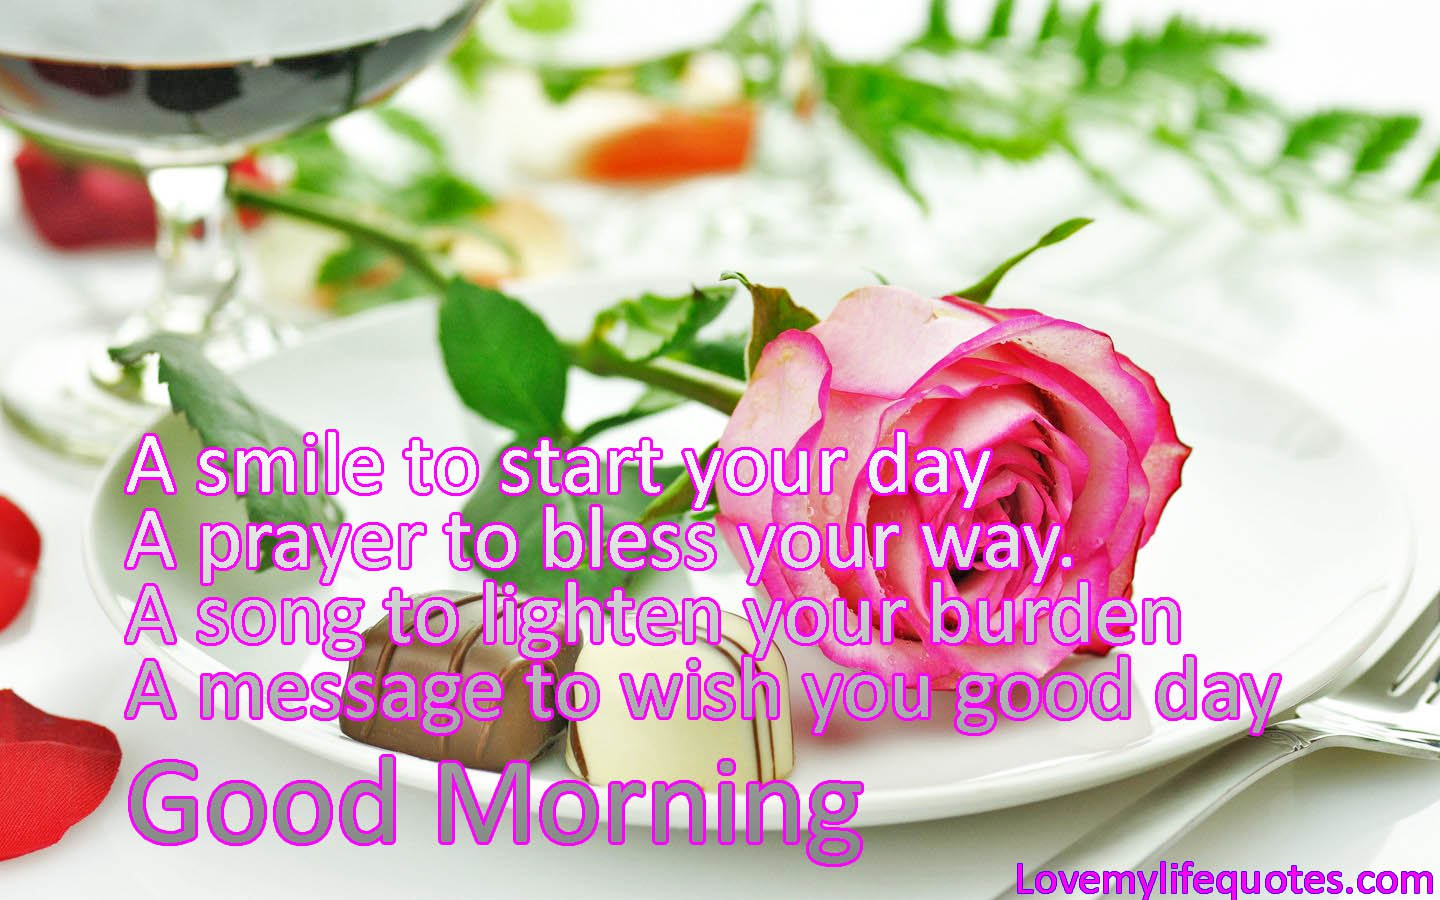 Good Morning My Love Short Message : Good morning wishes with blessing pictures images page